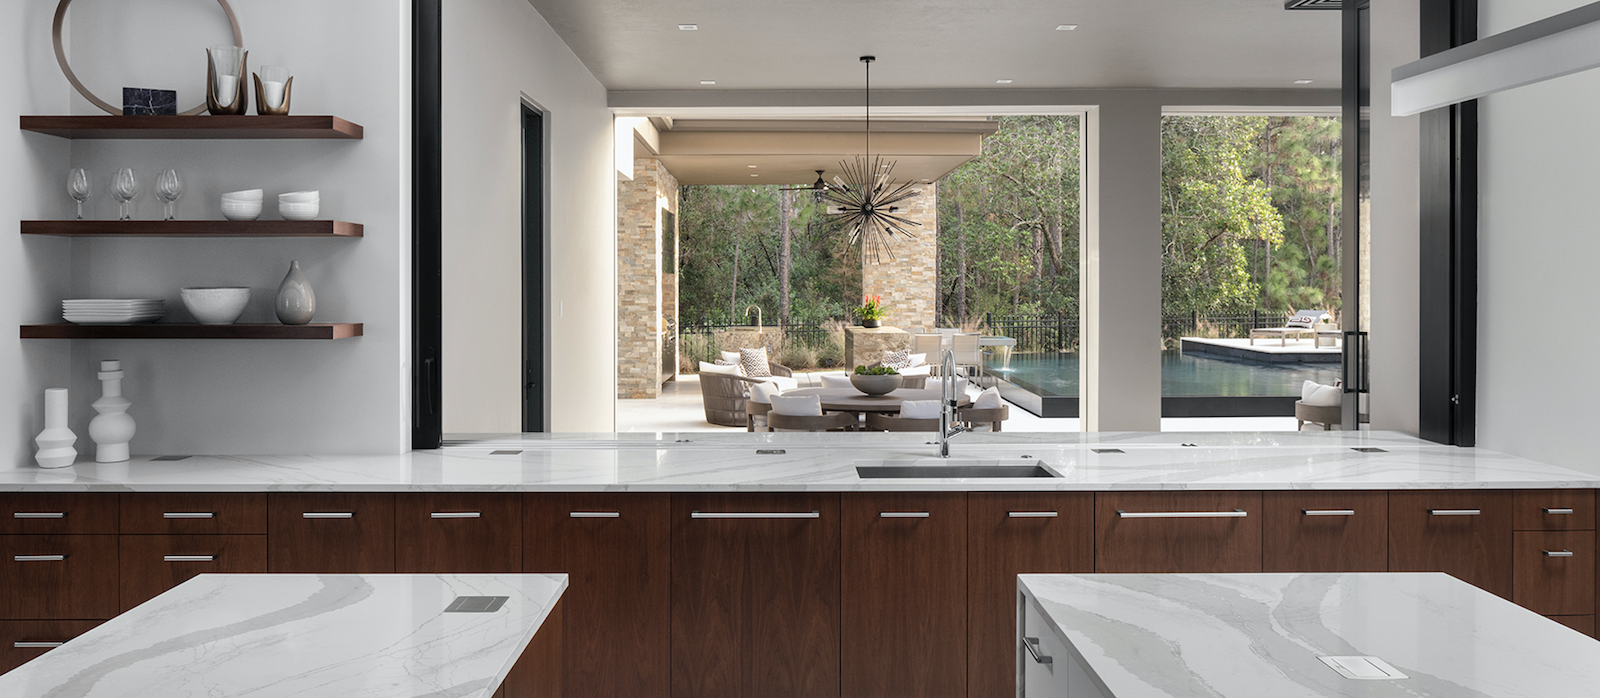 Nyumbani, in Orlando, Florida, wins Kitchen/Custom Spec Home Aurora Award